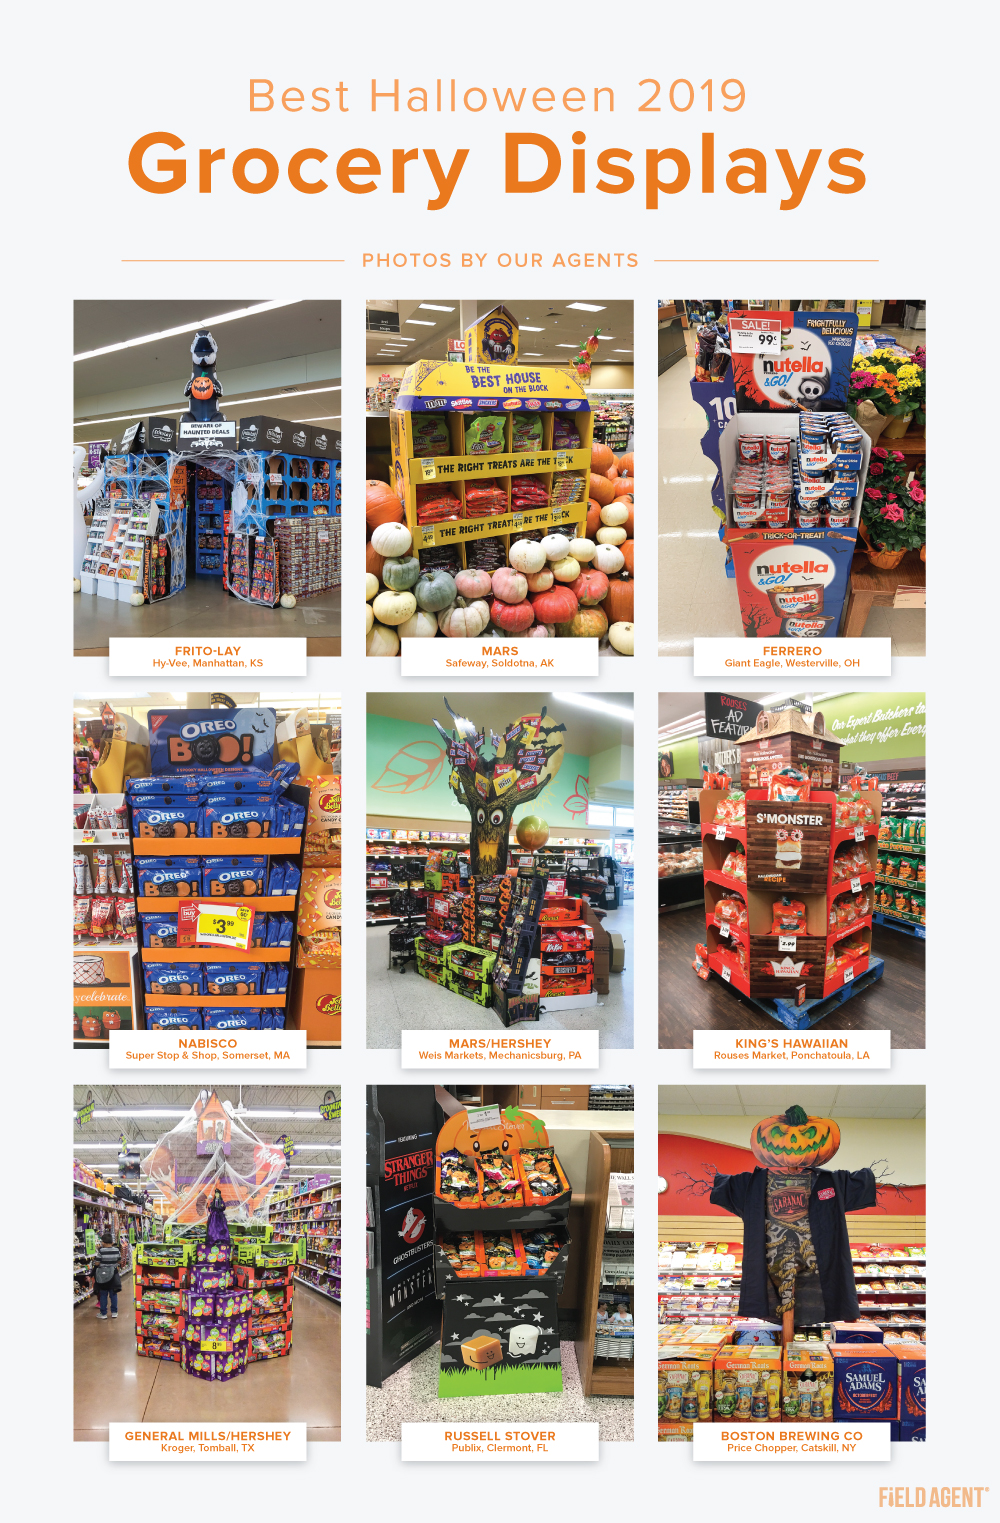 2019 Halloween Grocery Displays